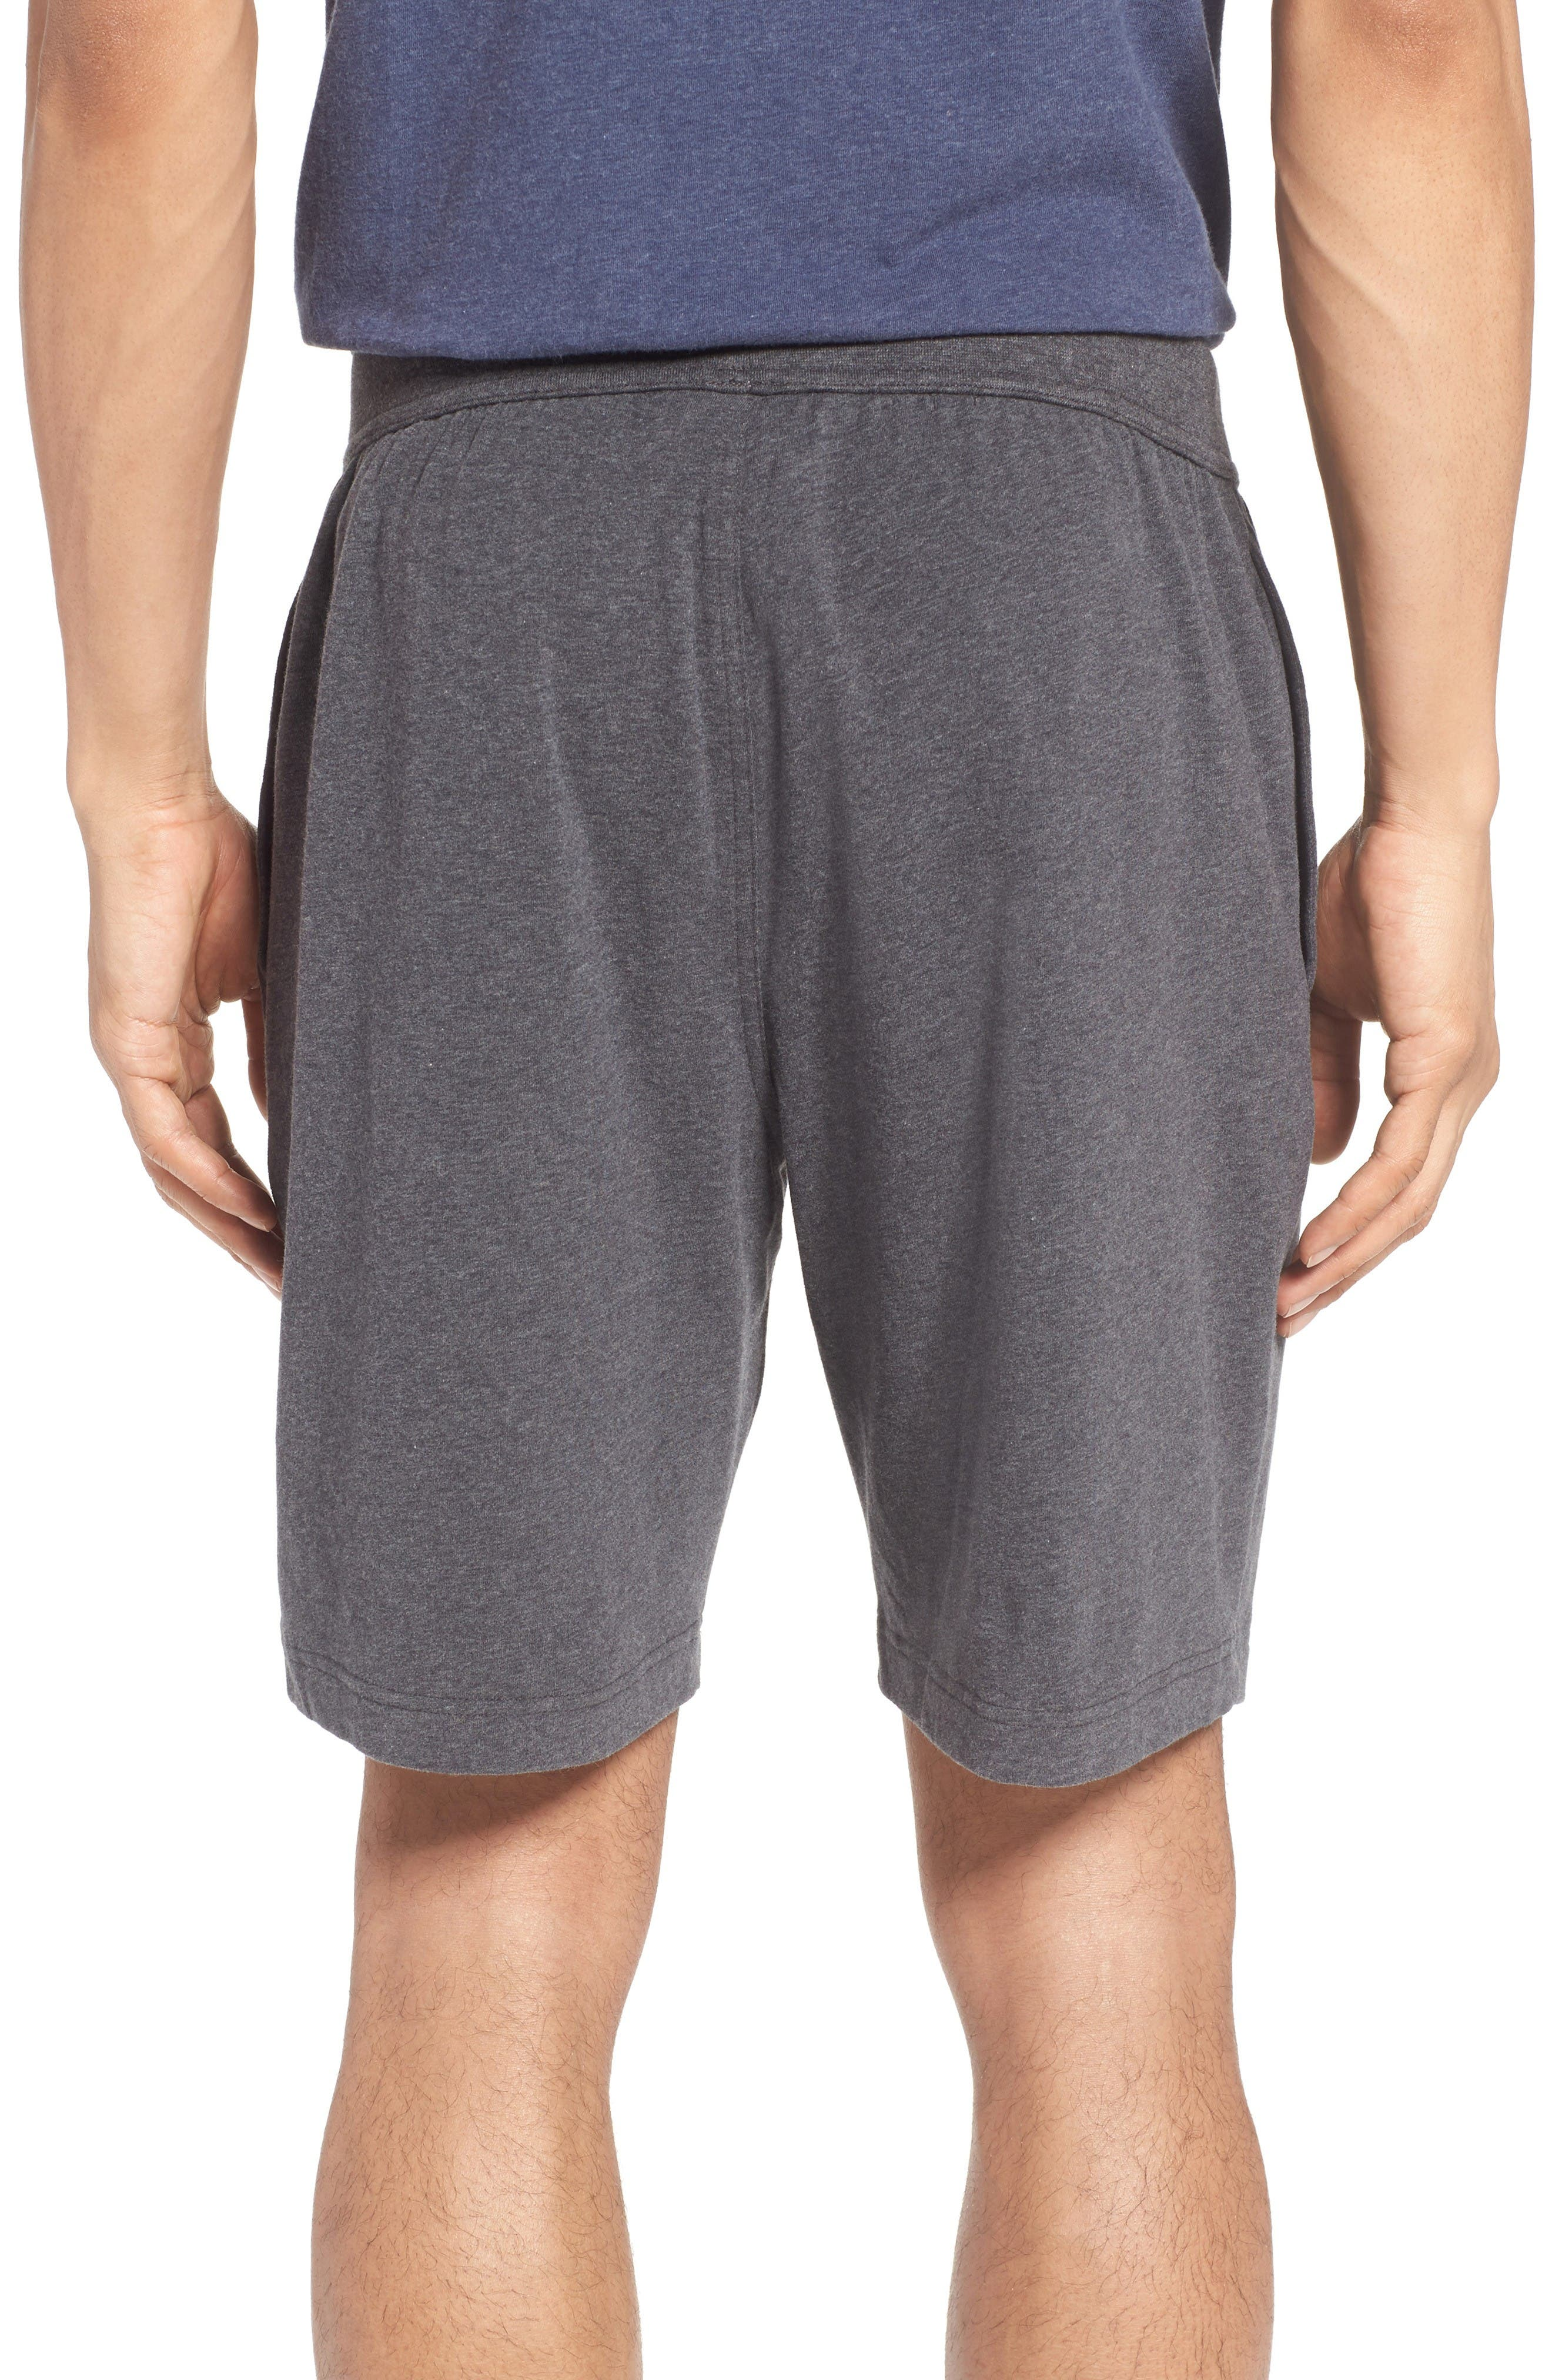 Stretch Cotton Lounge Shorts,                             Alternate thumbnail 2, color,                             Grey Charcoal